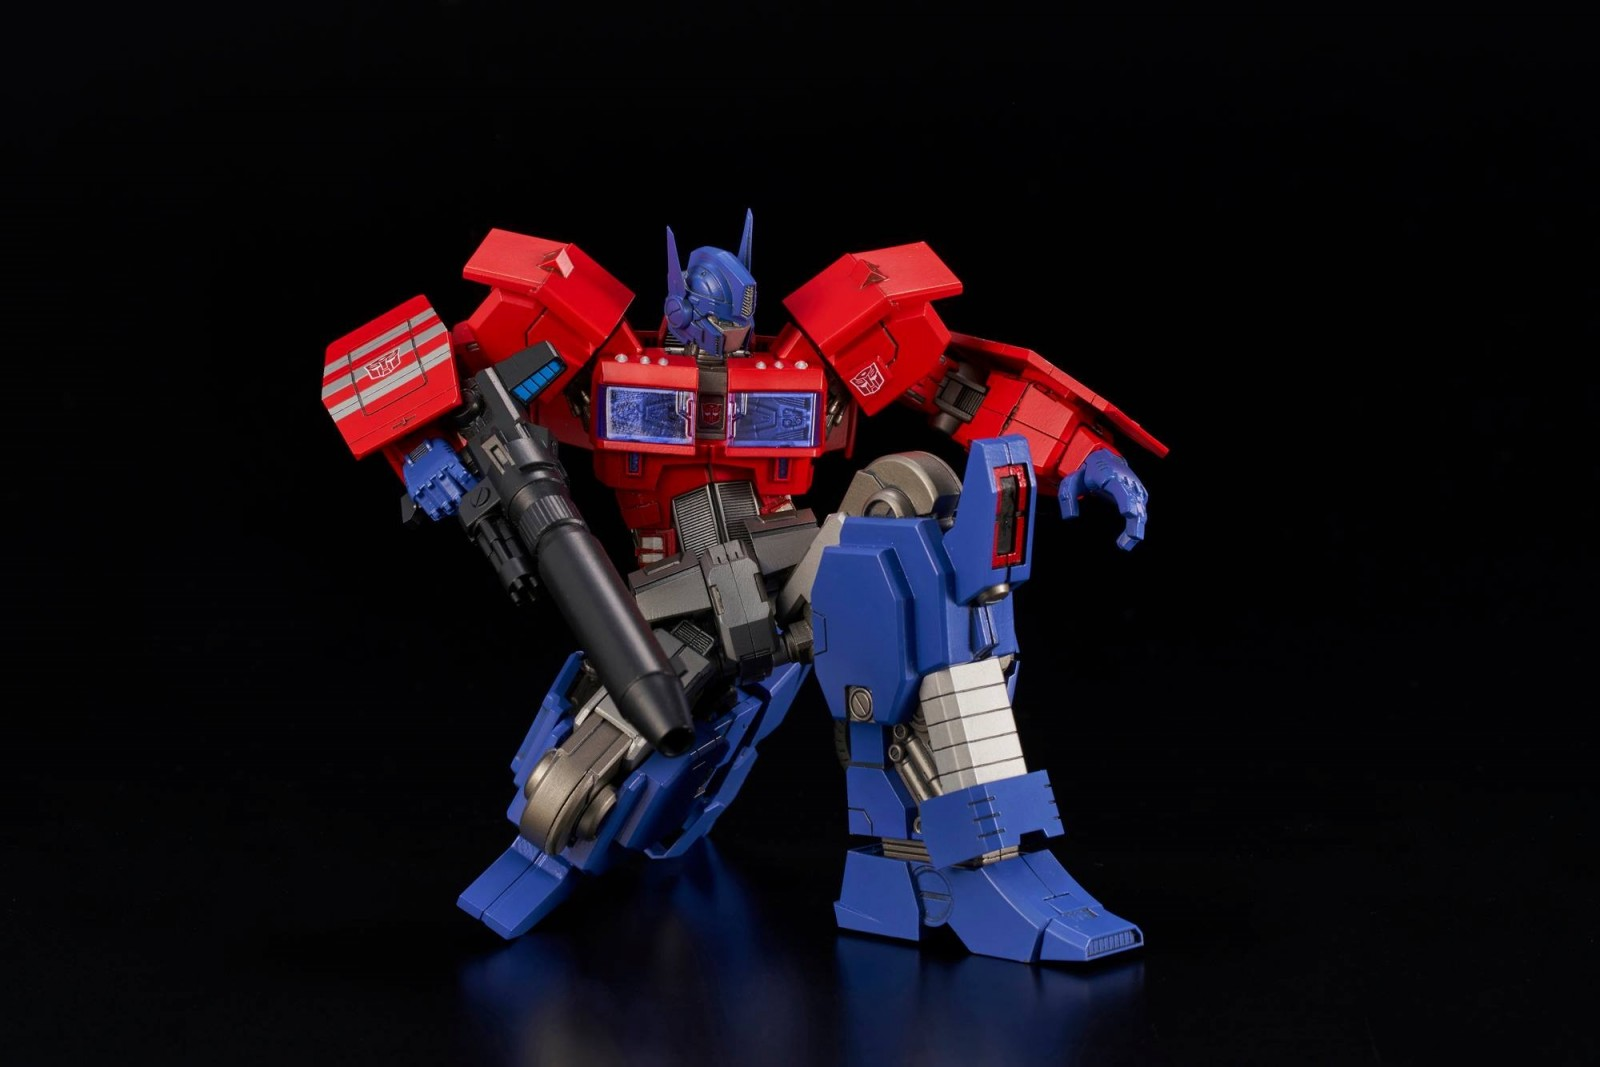 Transformers News: Flame Toys IDW Shattered Glass Drift and Optimus Prime Model Kit Pre-Orders Open